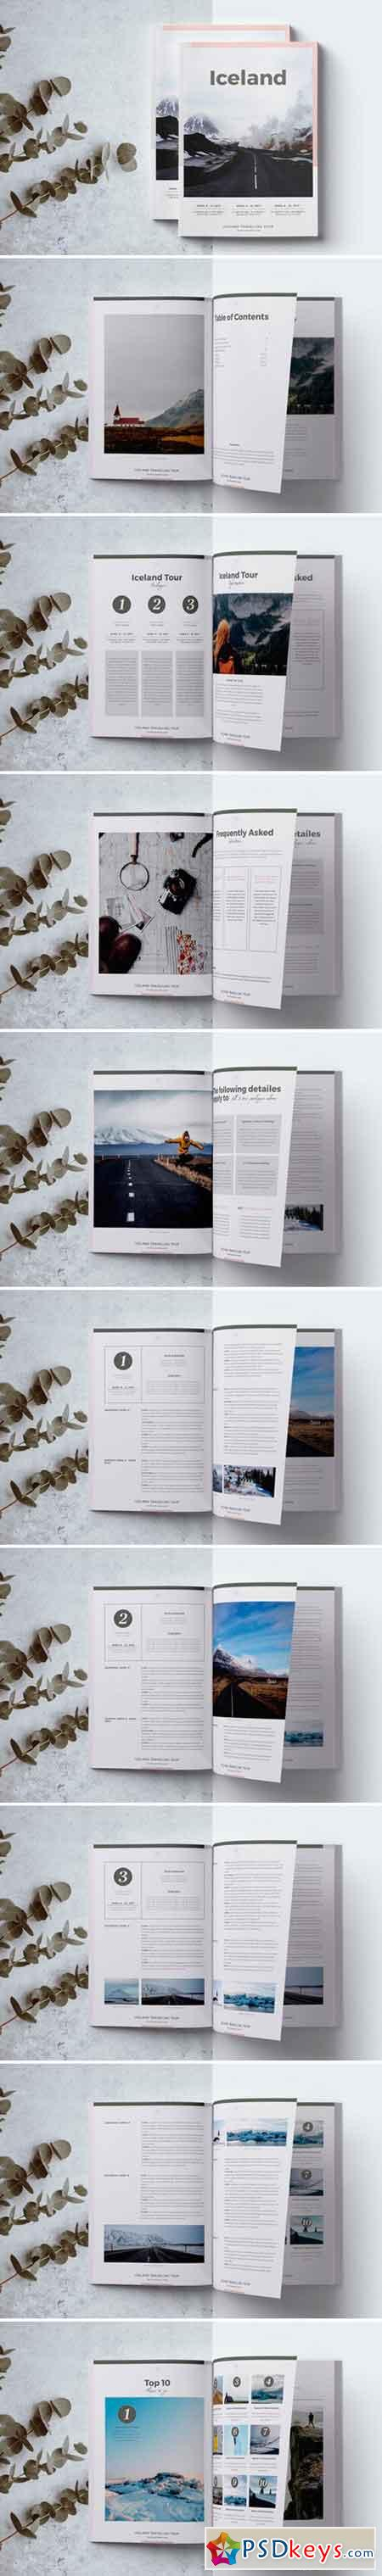 Iceland - Travel Agency Guide 2512019